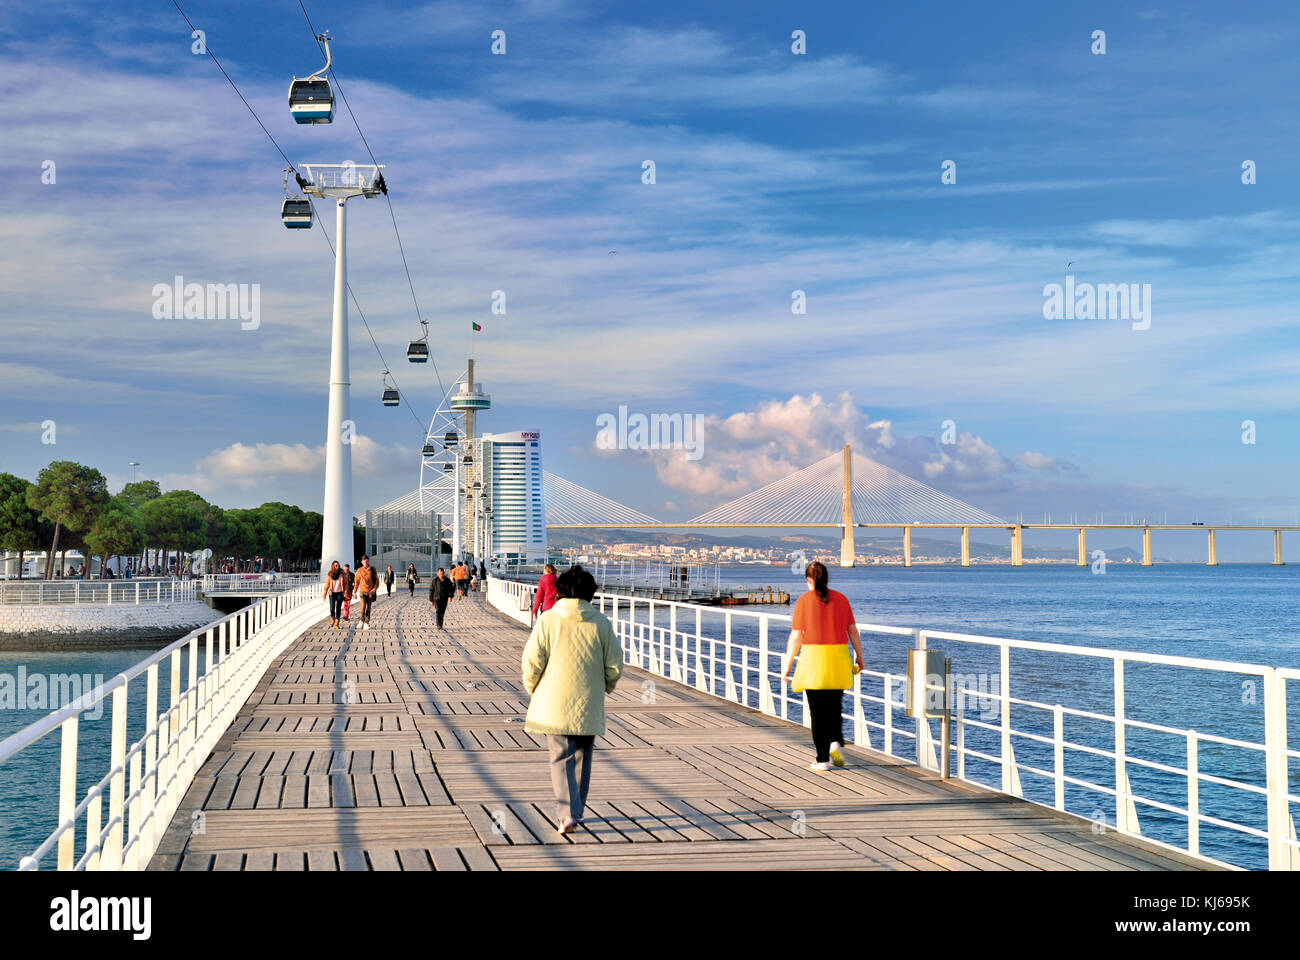 People passing pedestrian bridge surrounded by modern architecture, cable car lift and Vasco da Gama bridge - Stock Image